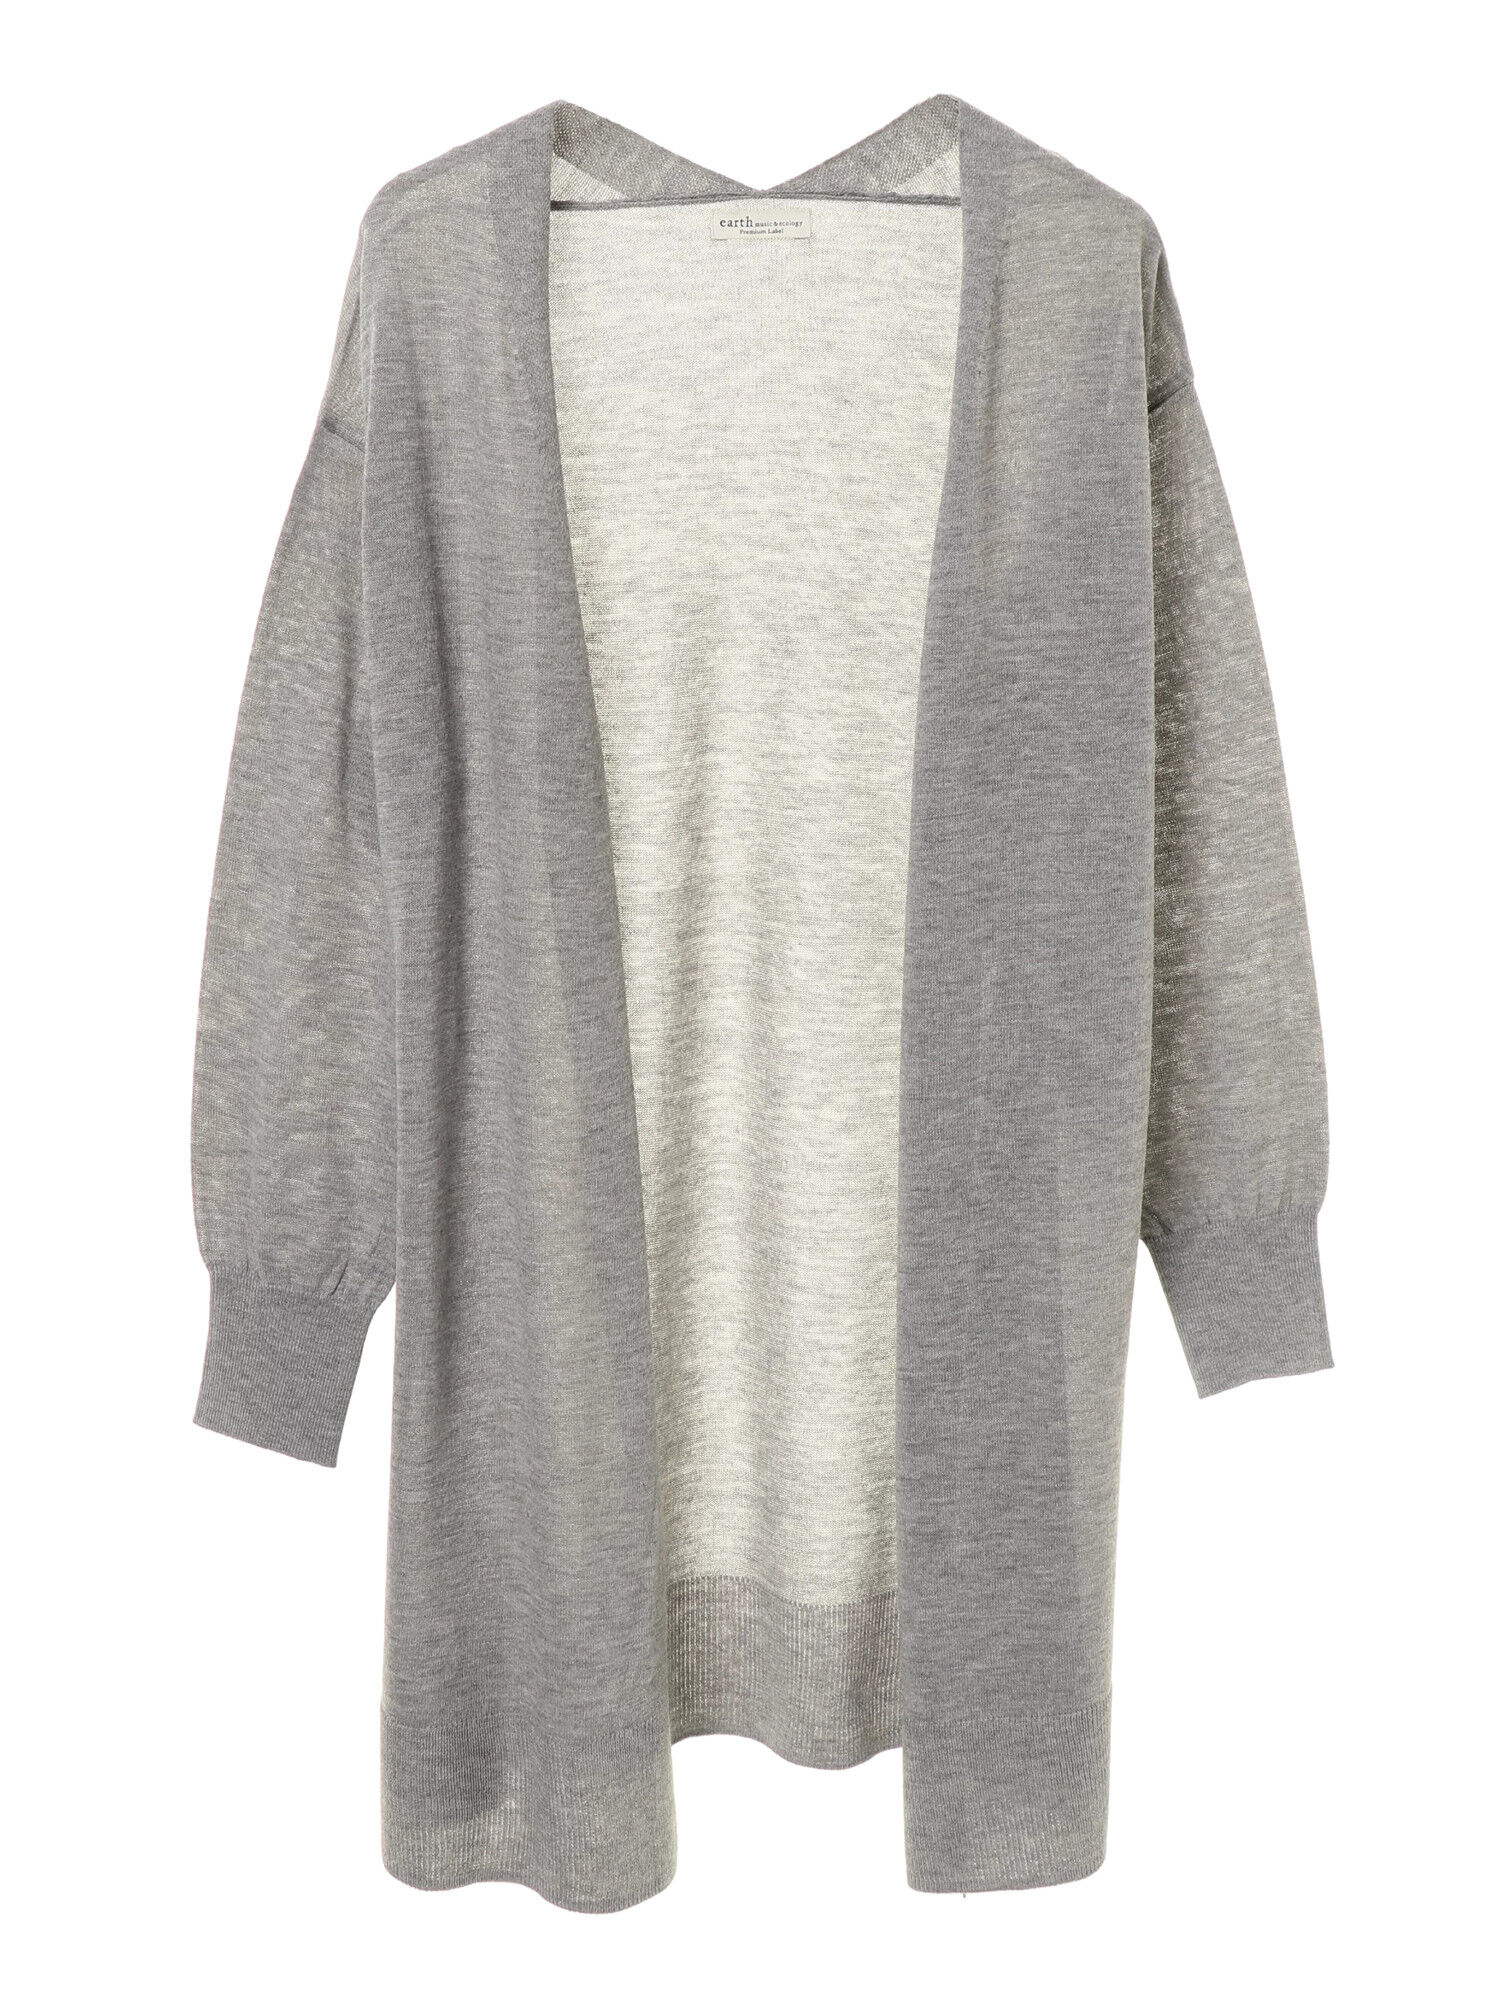 Earth, Music & Ecology Chazmire Cardigan - Gray Mixture